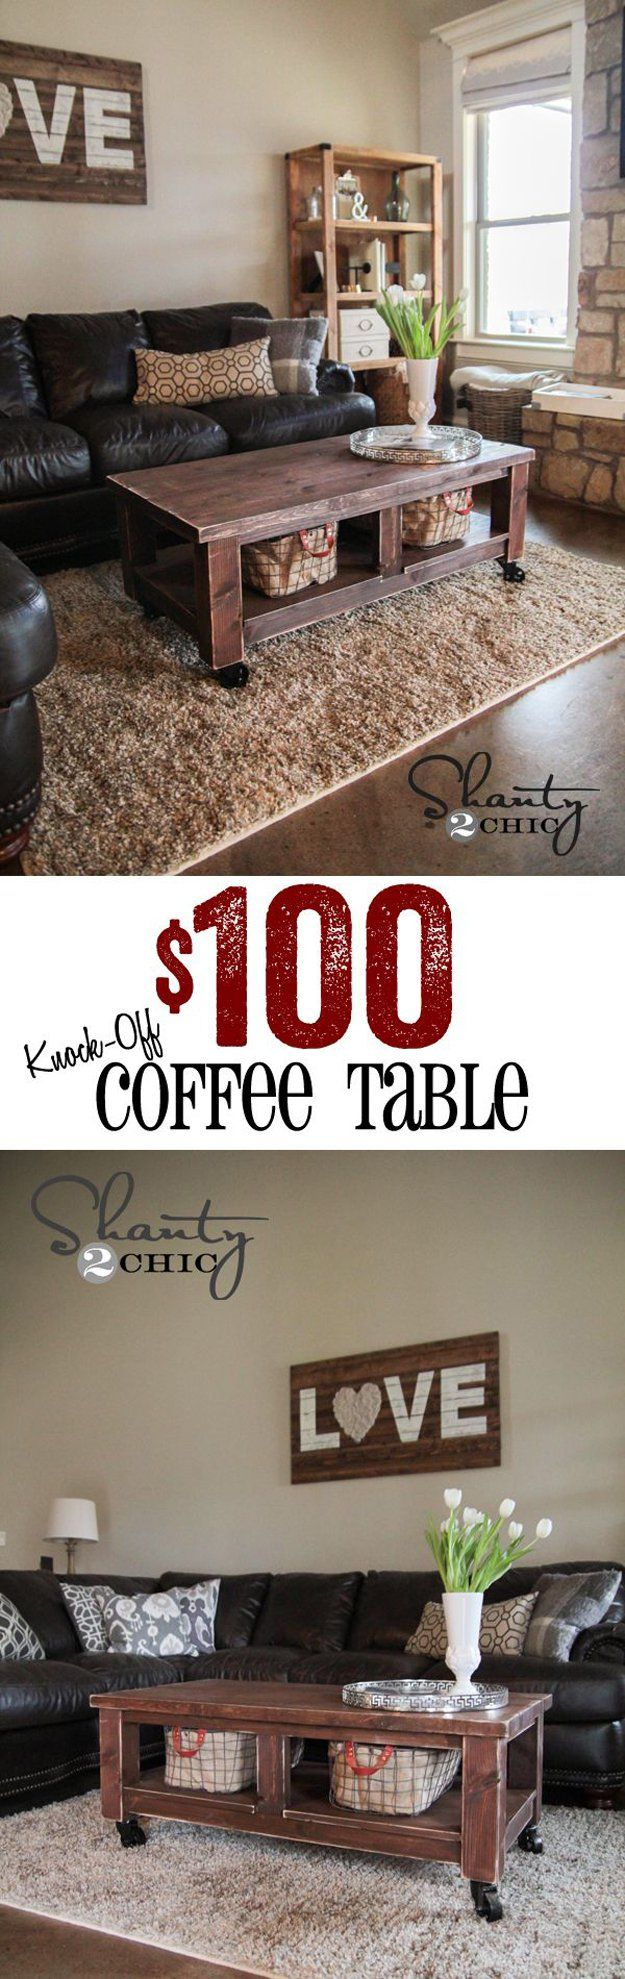 DIY Coffee Table With Storage Baskets | 34 Pottery Barn Knock Off Ideas For Design On A Budget by DIY Ready at http://diyready.com/diy-projects-pottery-barn-hacks